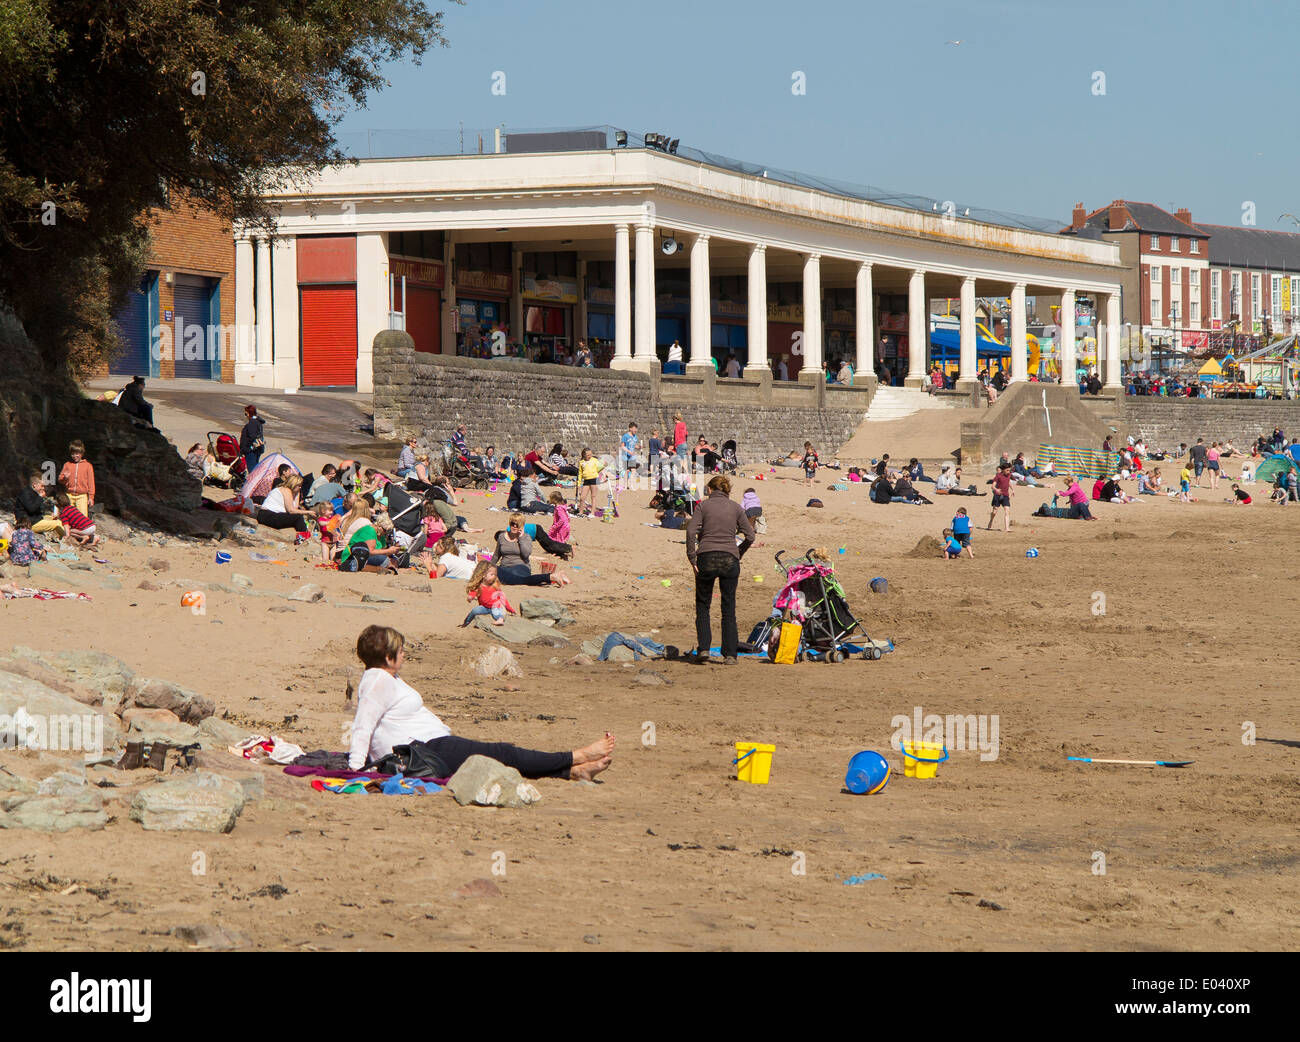 Whitmore Bay beach and pavilion, Barry Island, on a warm sunny day in early spring Stock Photo